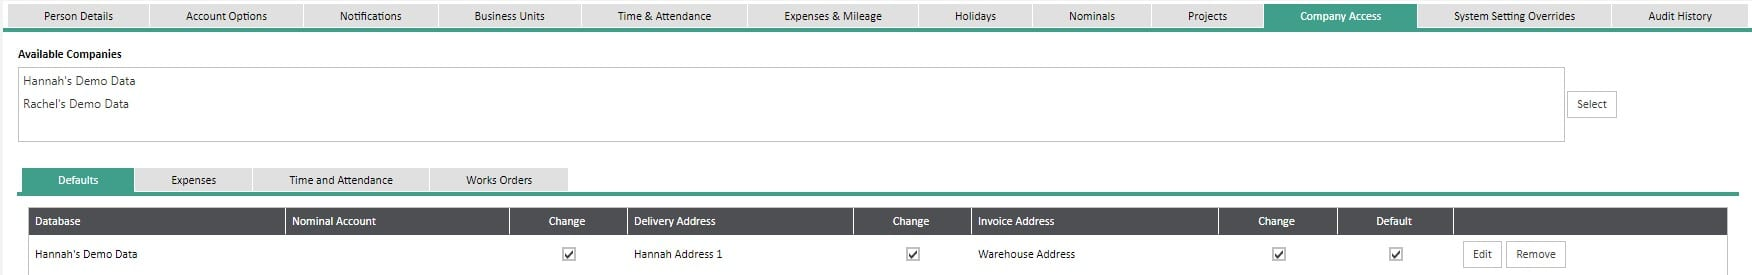 Sicon WAP Invoice Help and User Guide - Invoice HUG Section 17.5 Image 1